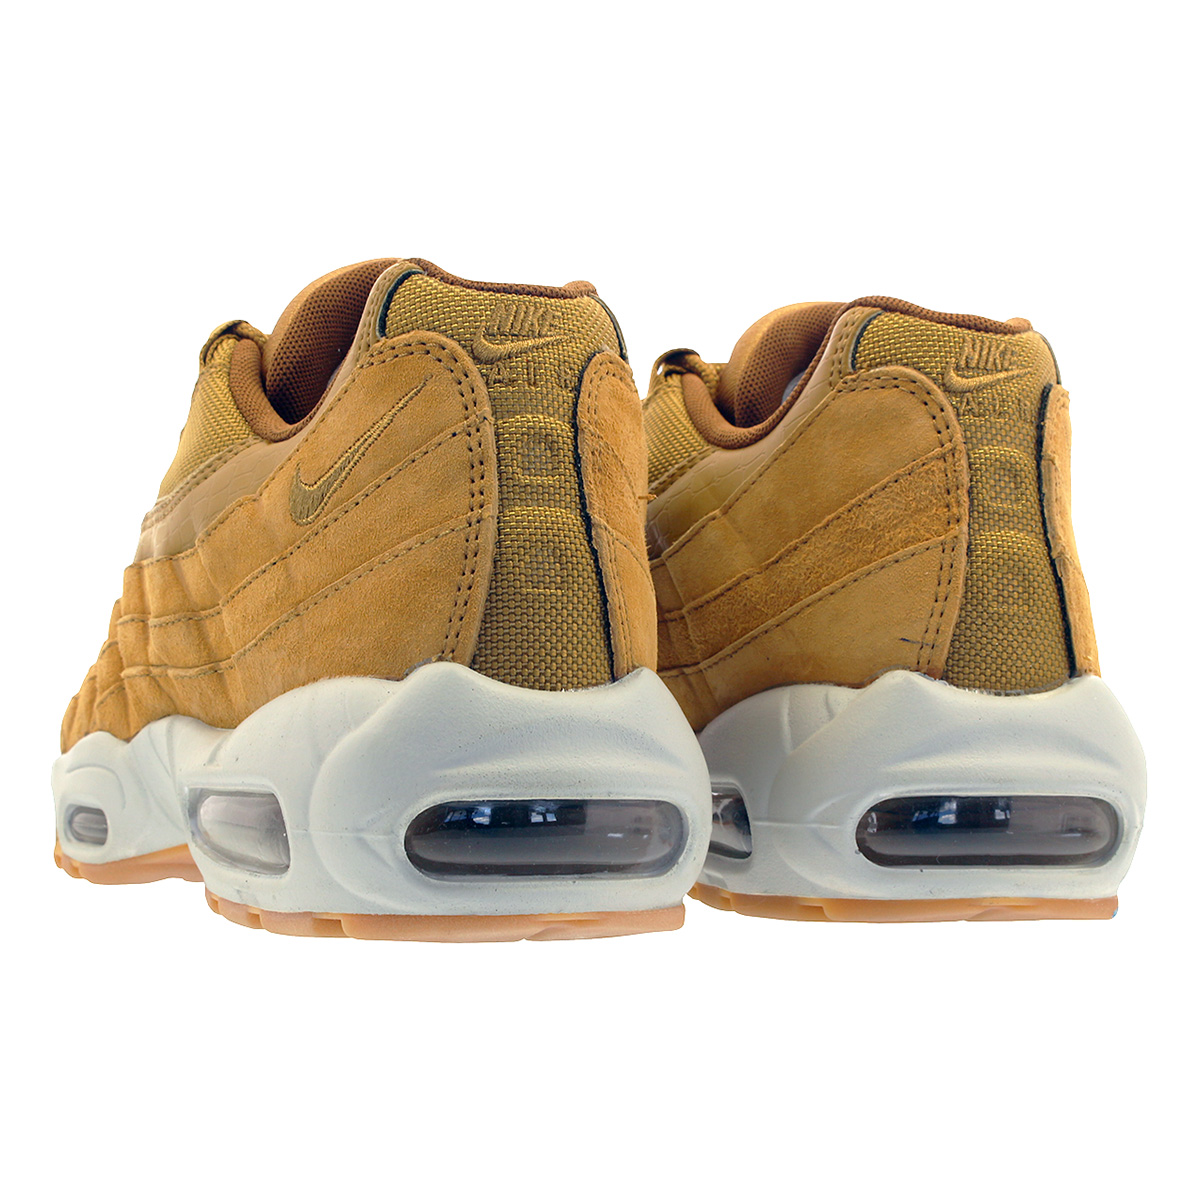 519ee26b5bf ... NIKE AIR MAX 95 SE나이키 에어 막스 95 SE WHEAT/LIGHT BONE aj2018- ...